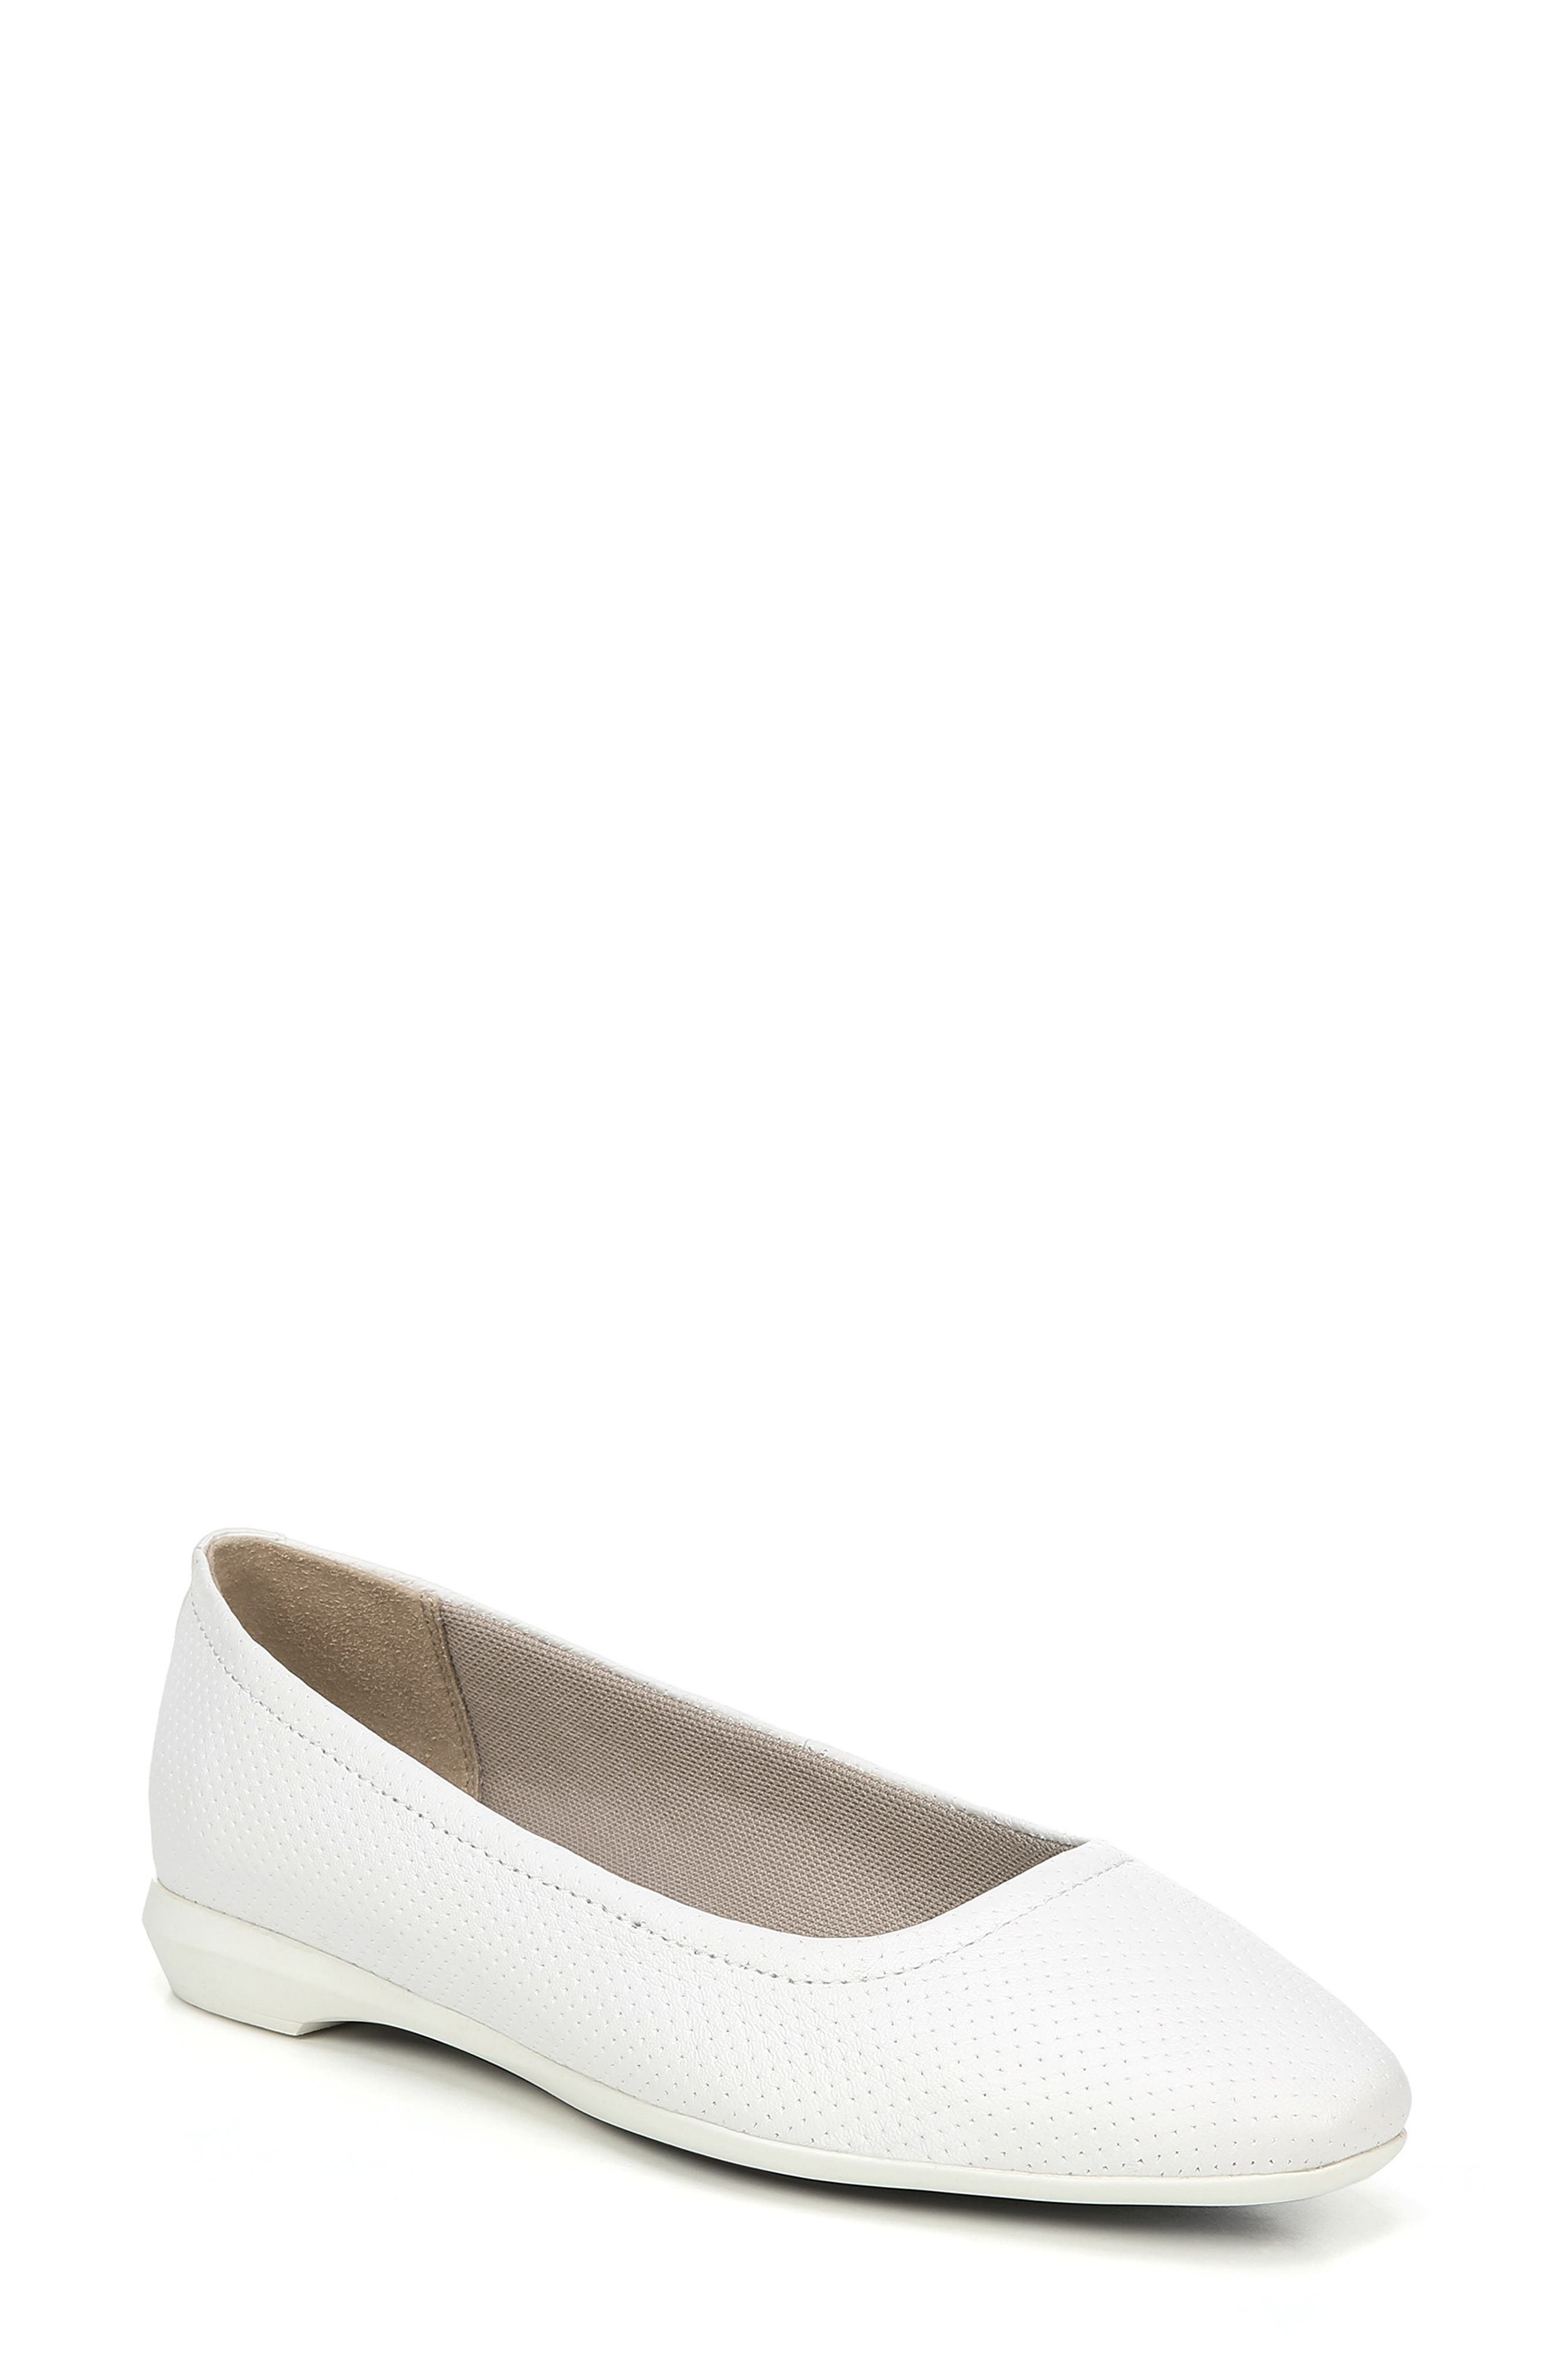 Naturalizer Alya Flat- White